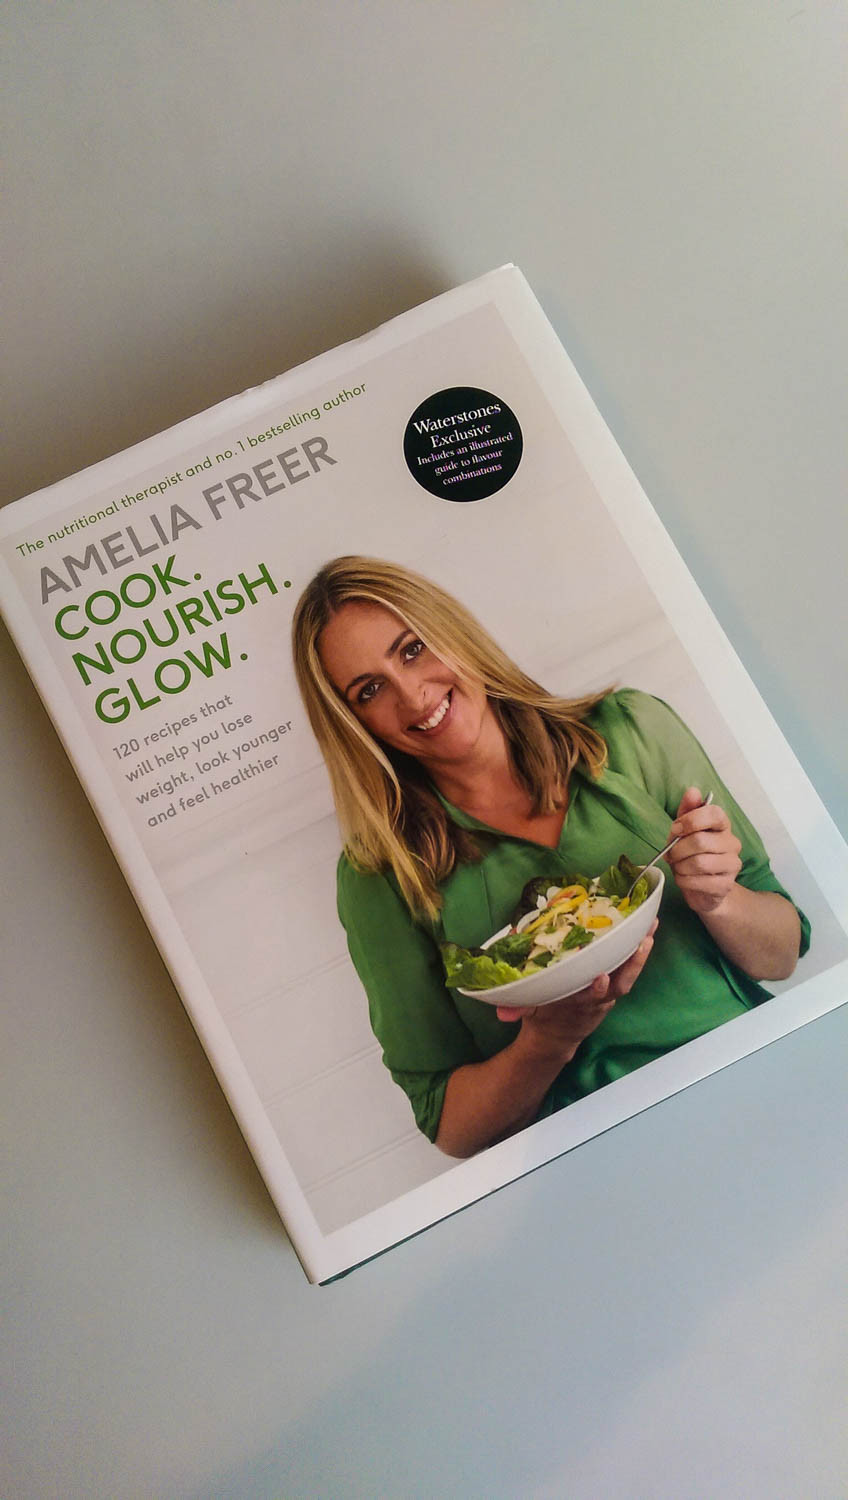 Amelia Freer's Cook. Nourish. Glow. at Waterstone's and The Nail Boutique